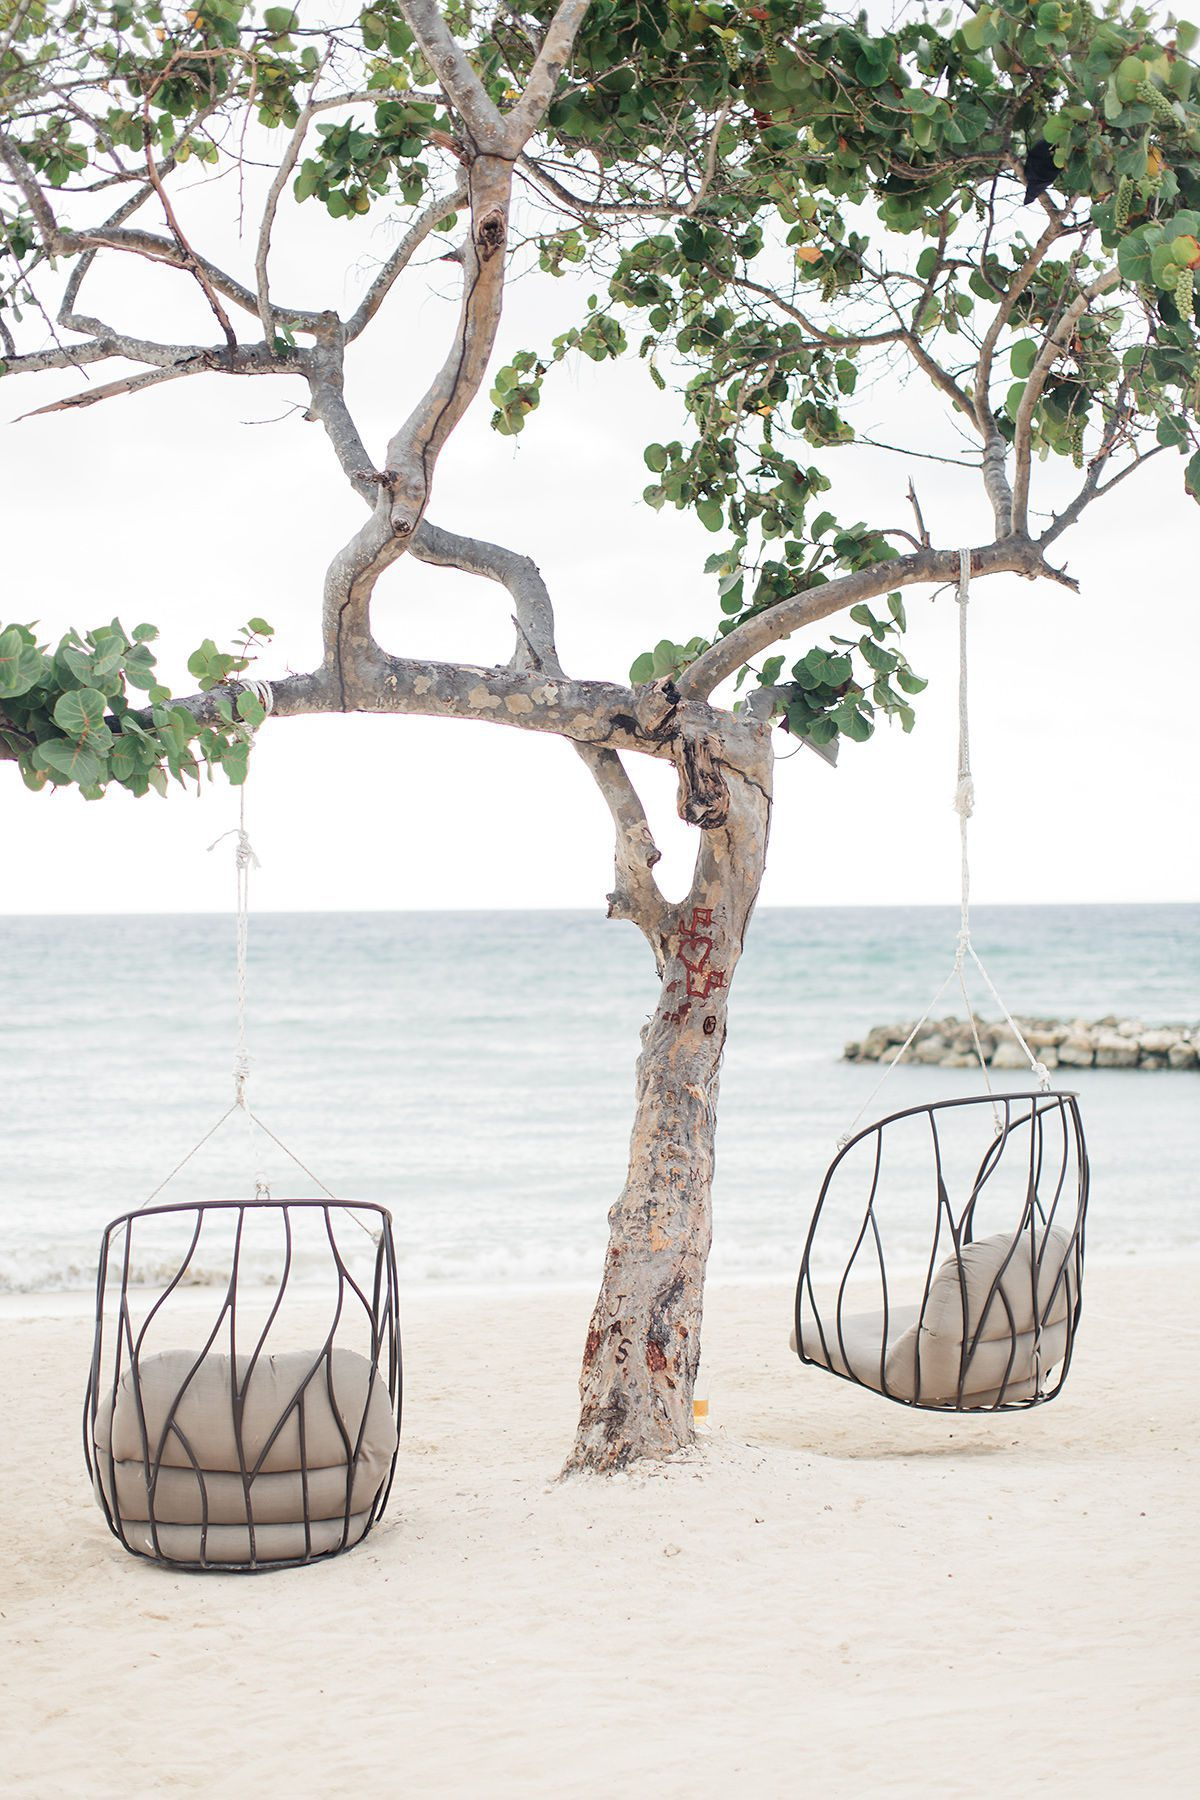 Wicker Chairs on the beach